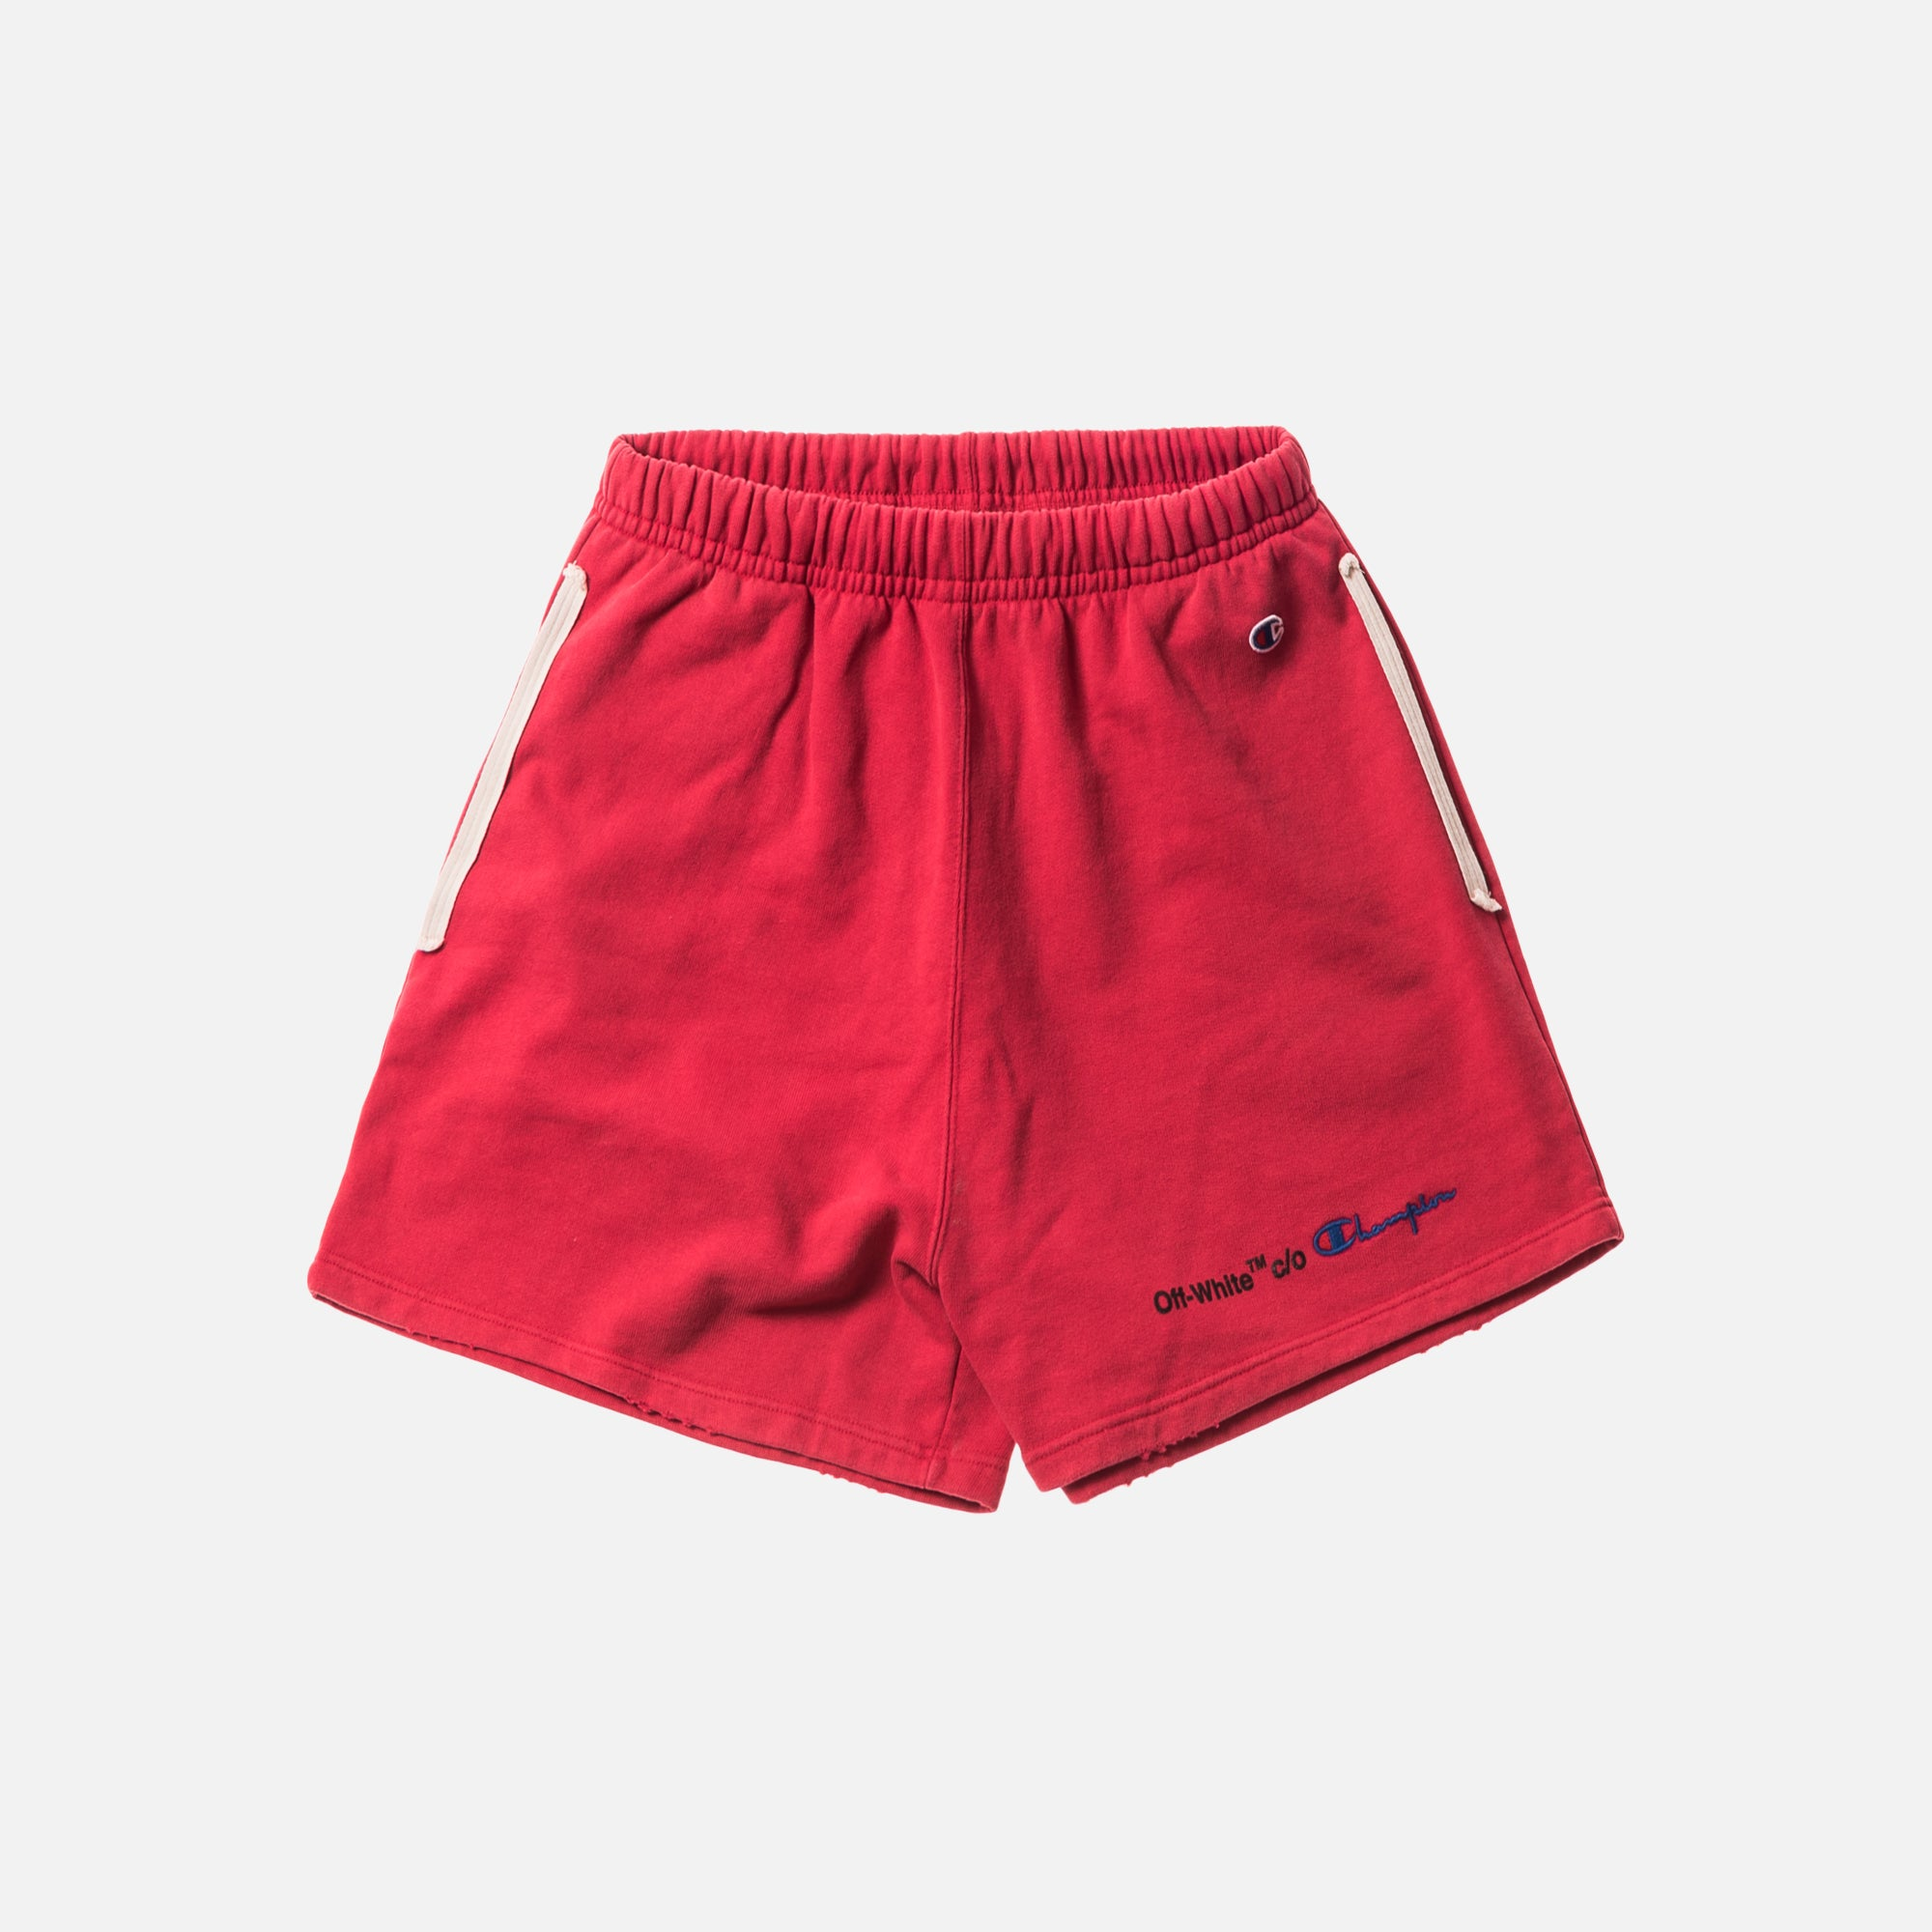 Off-White x Champion Shorts - Red / Black